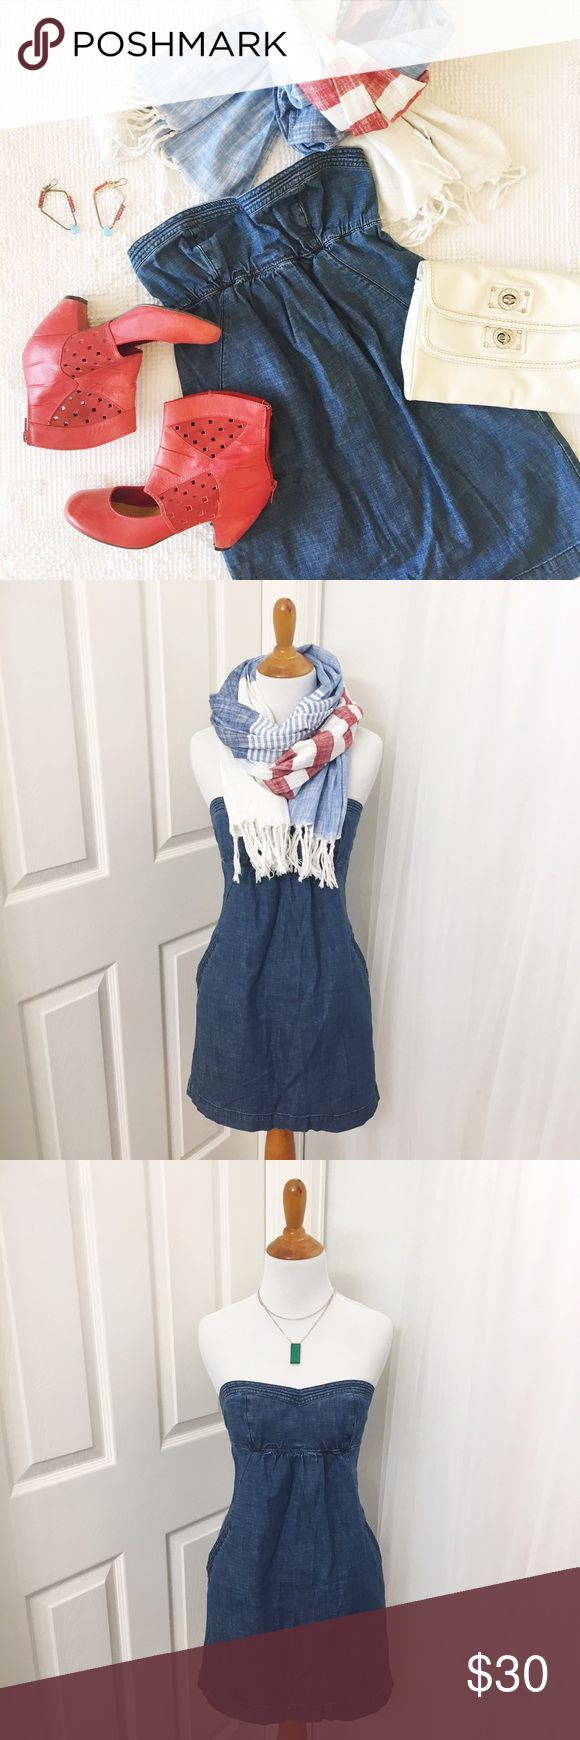 Sweetheart Strapless Denim Dress 🍑 Size 0  🍑 Vintage Denim Blue  🍑 Stretchy Cotton Denim 🍑 EUC 🍑 AEO  ✨ Price is FIRM ✨ All items from a smoke free home  ✨ Please ask questions prior to purchase American Eagle Outfitters Dresses